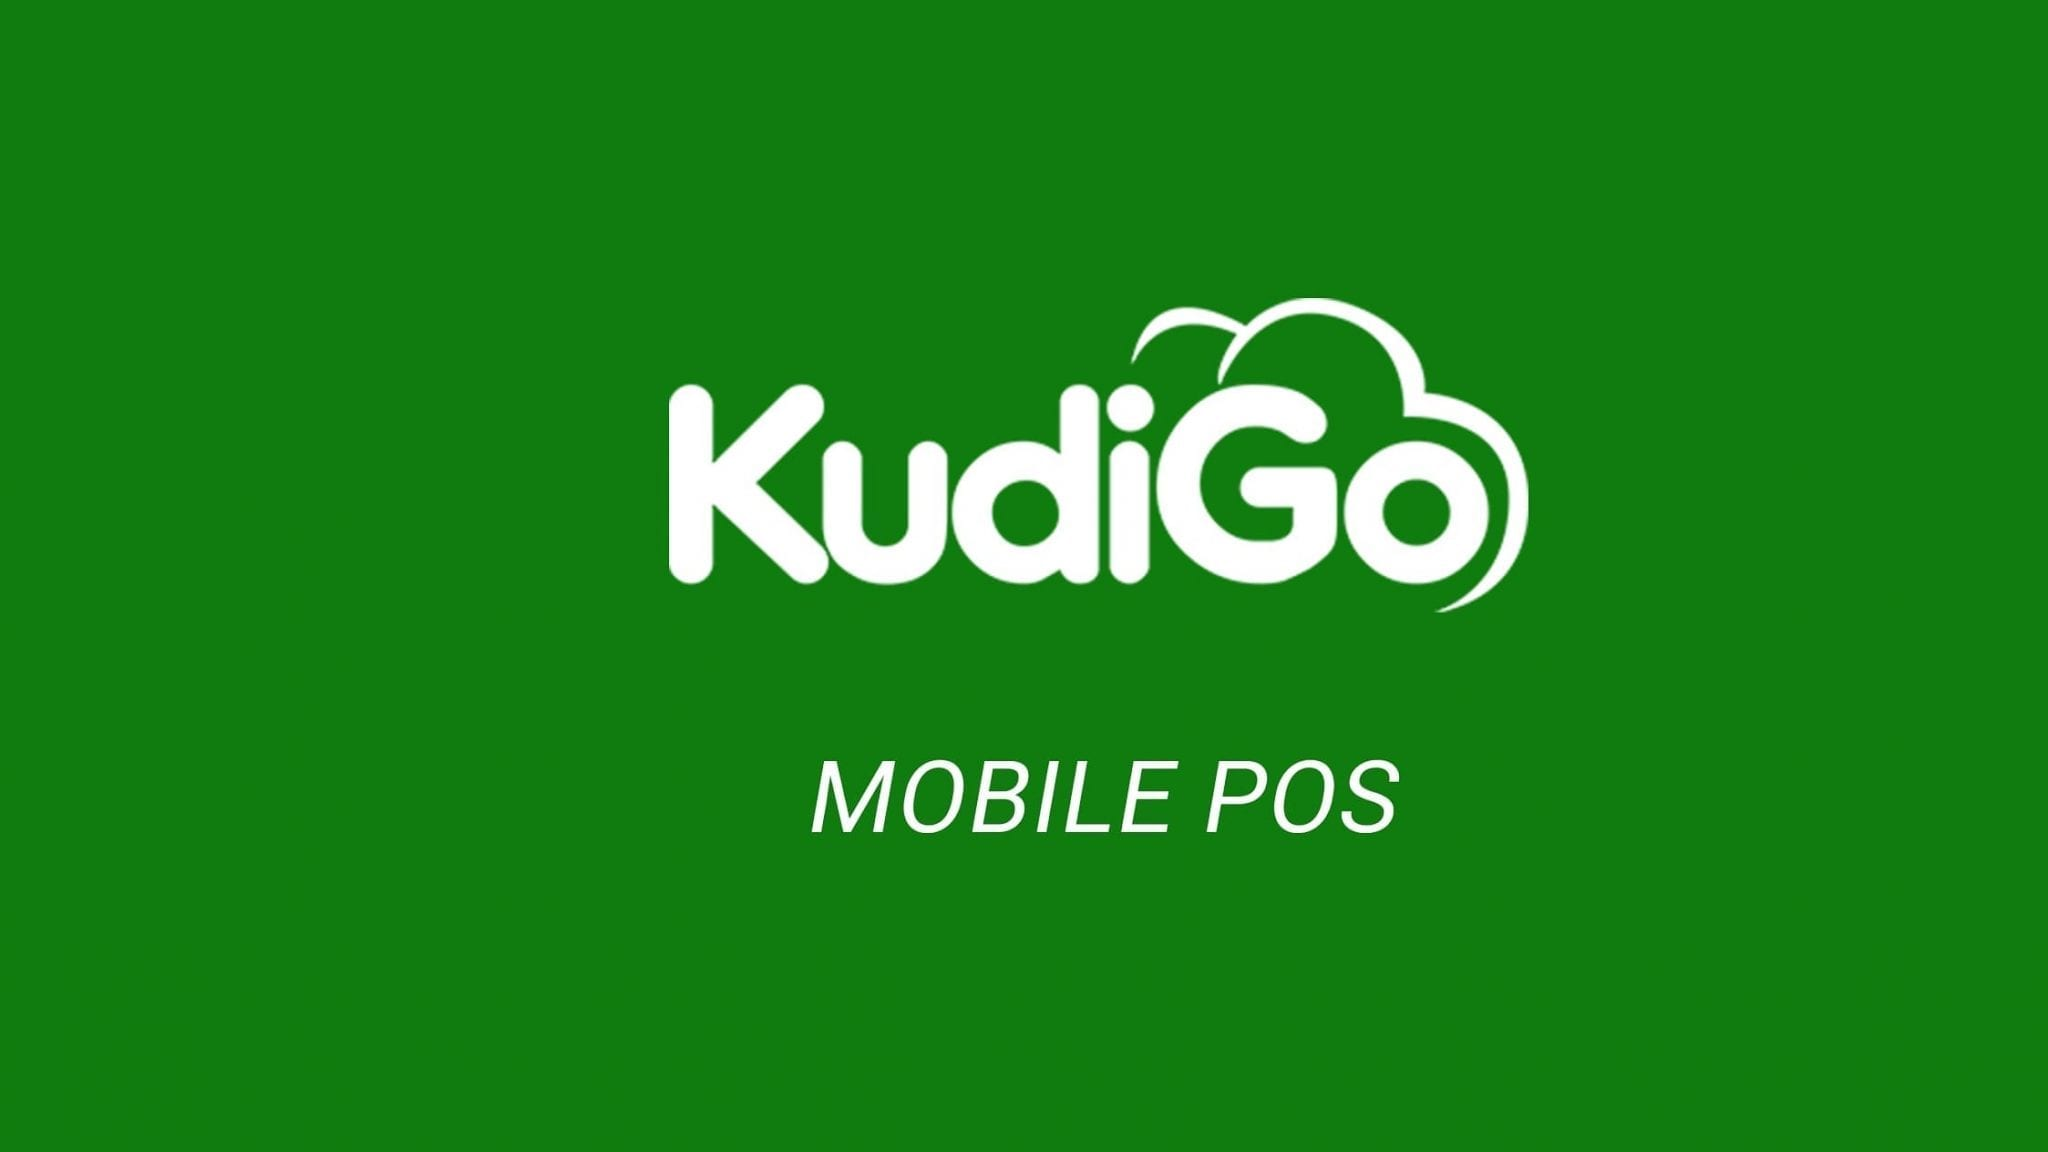 Ghana's KudiGO officially launches; plans to enter other African countries